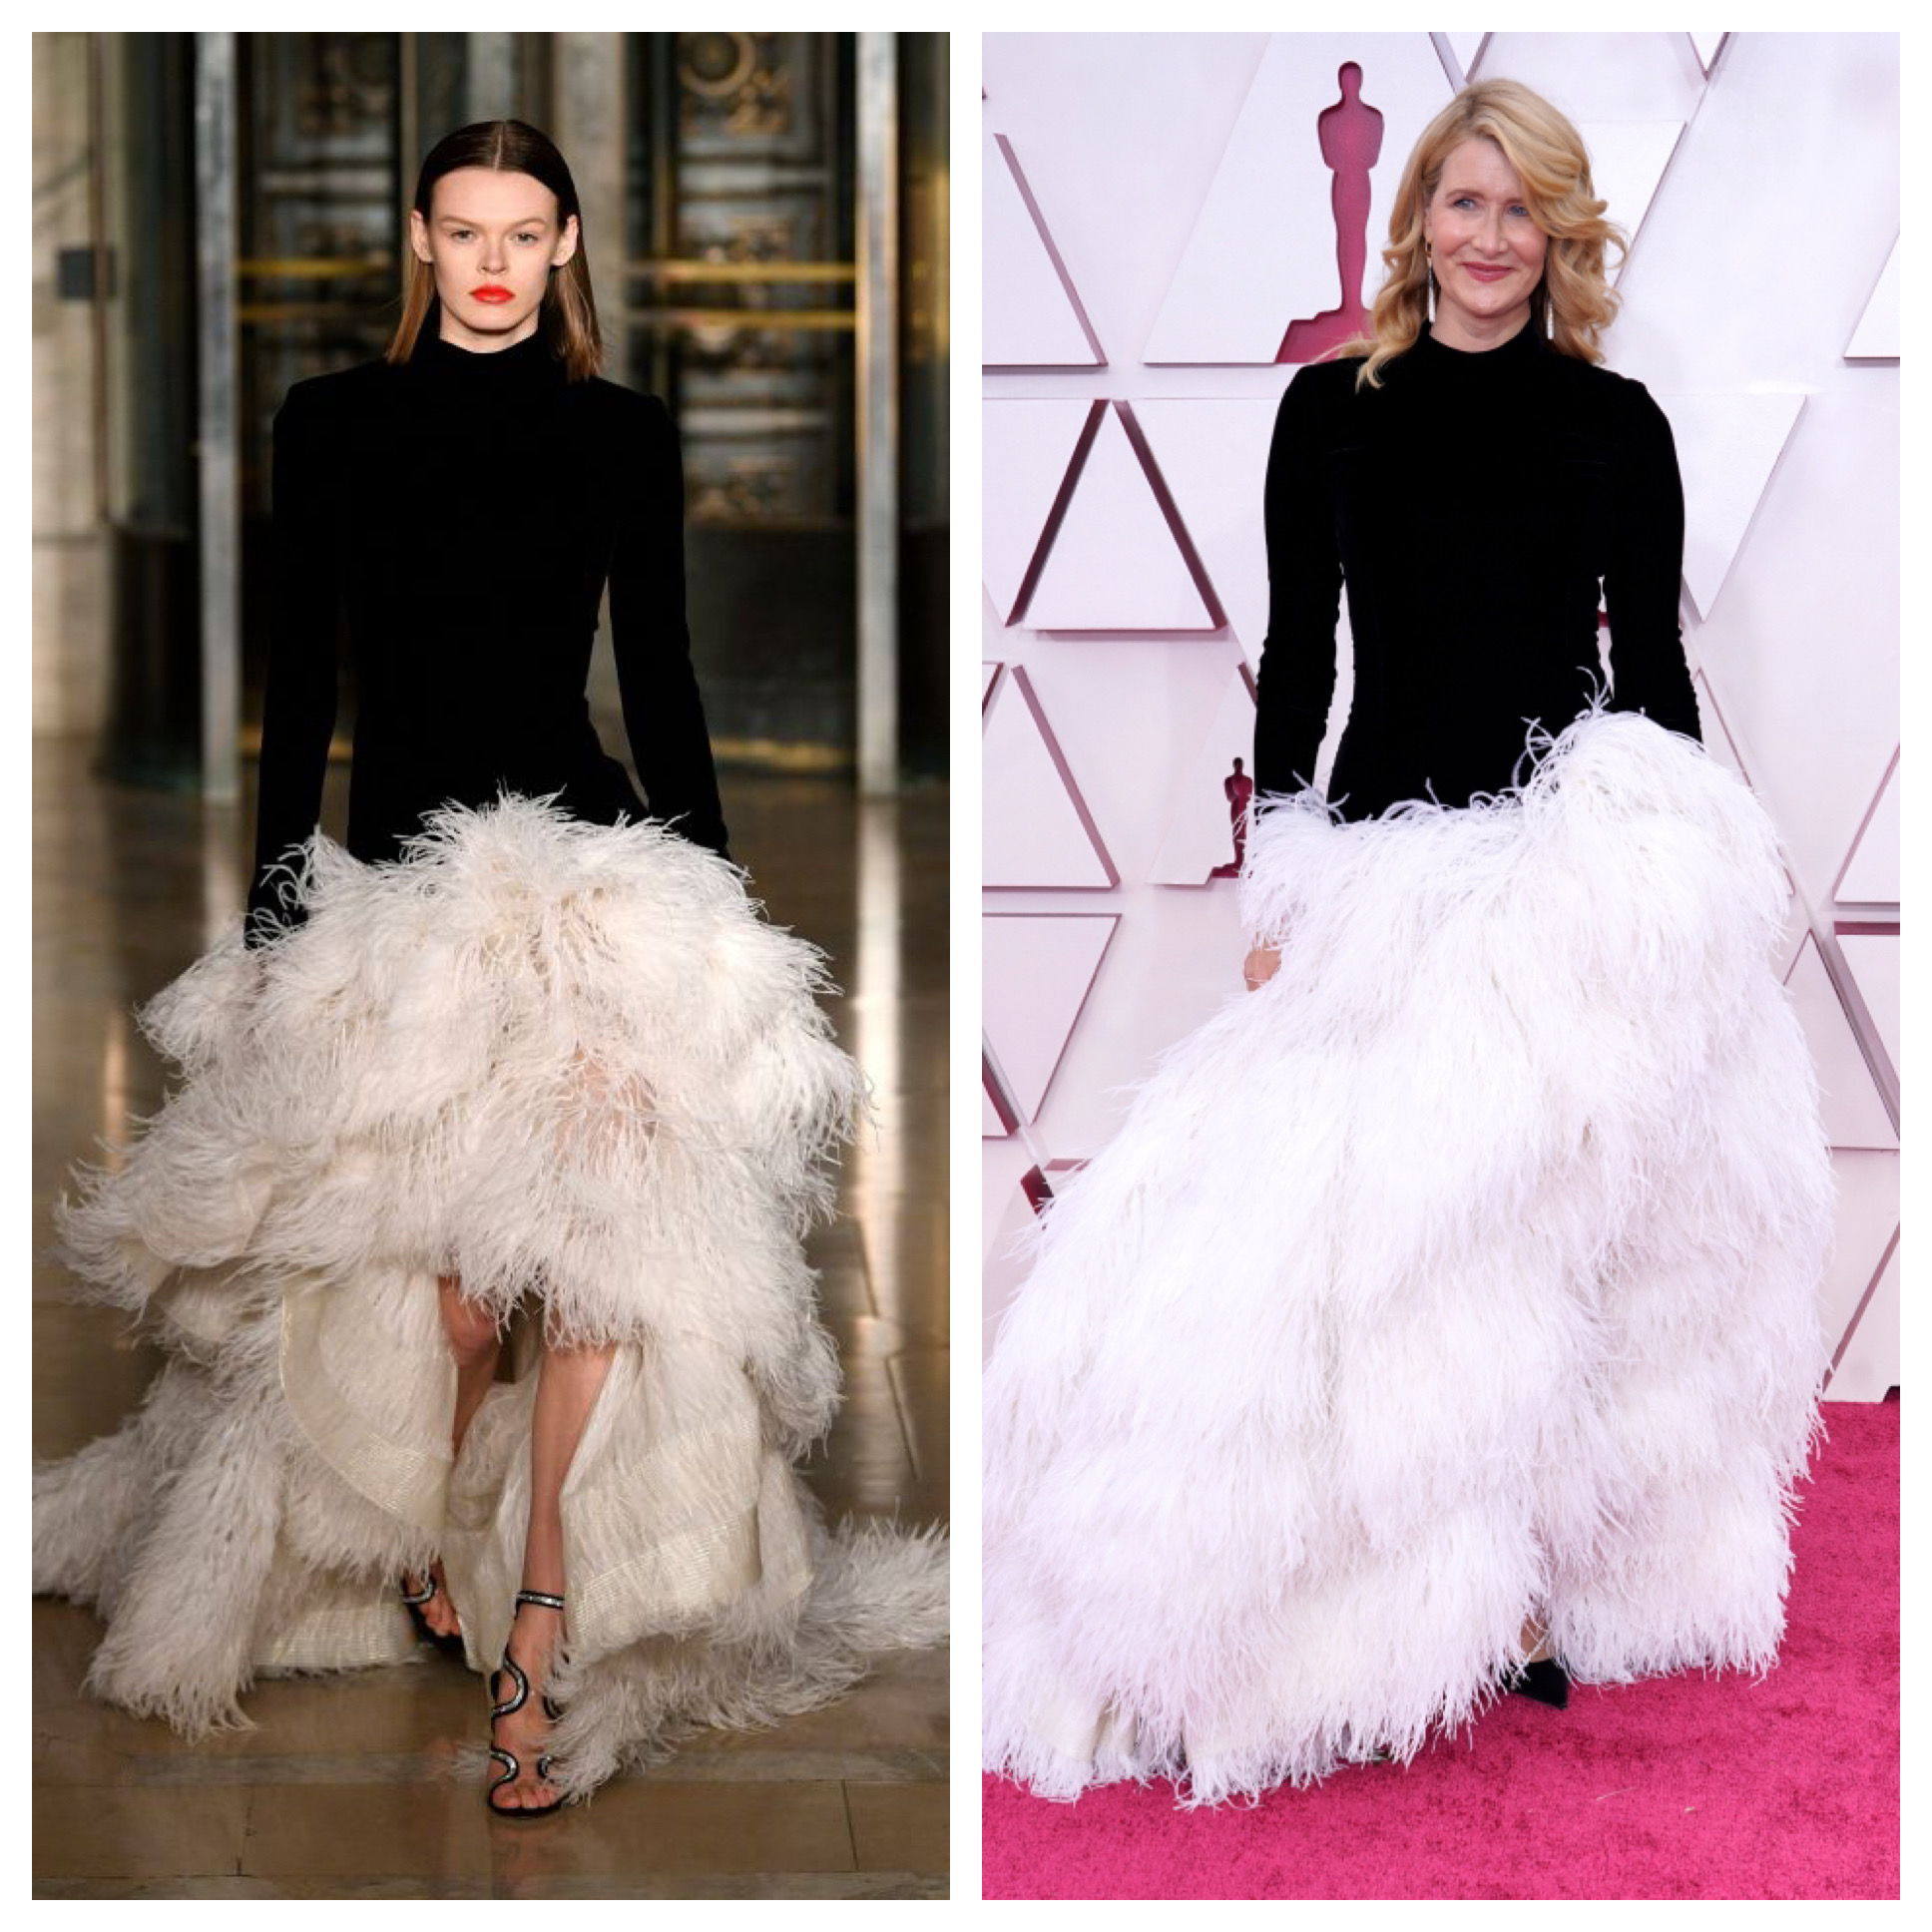 2021 Oscars Red Carpet Looks on the Fashion Week Runway